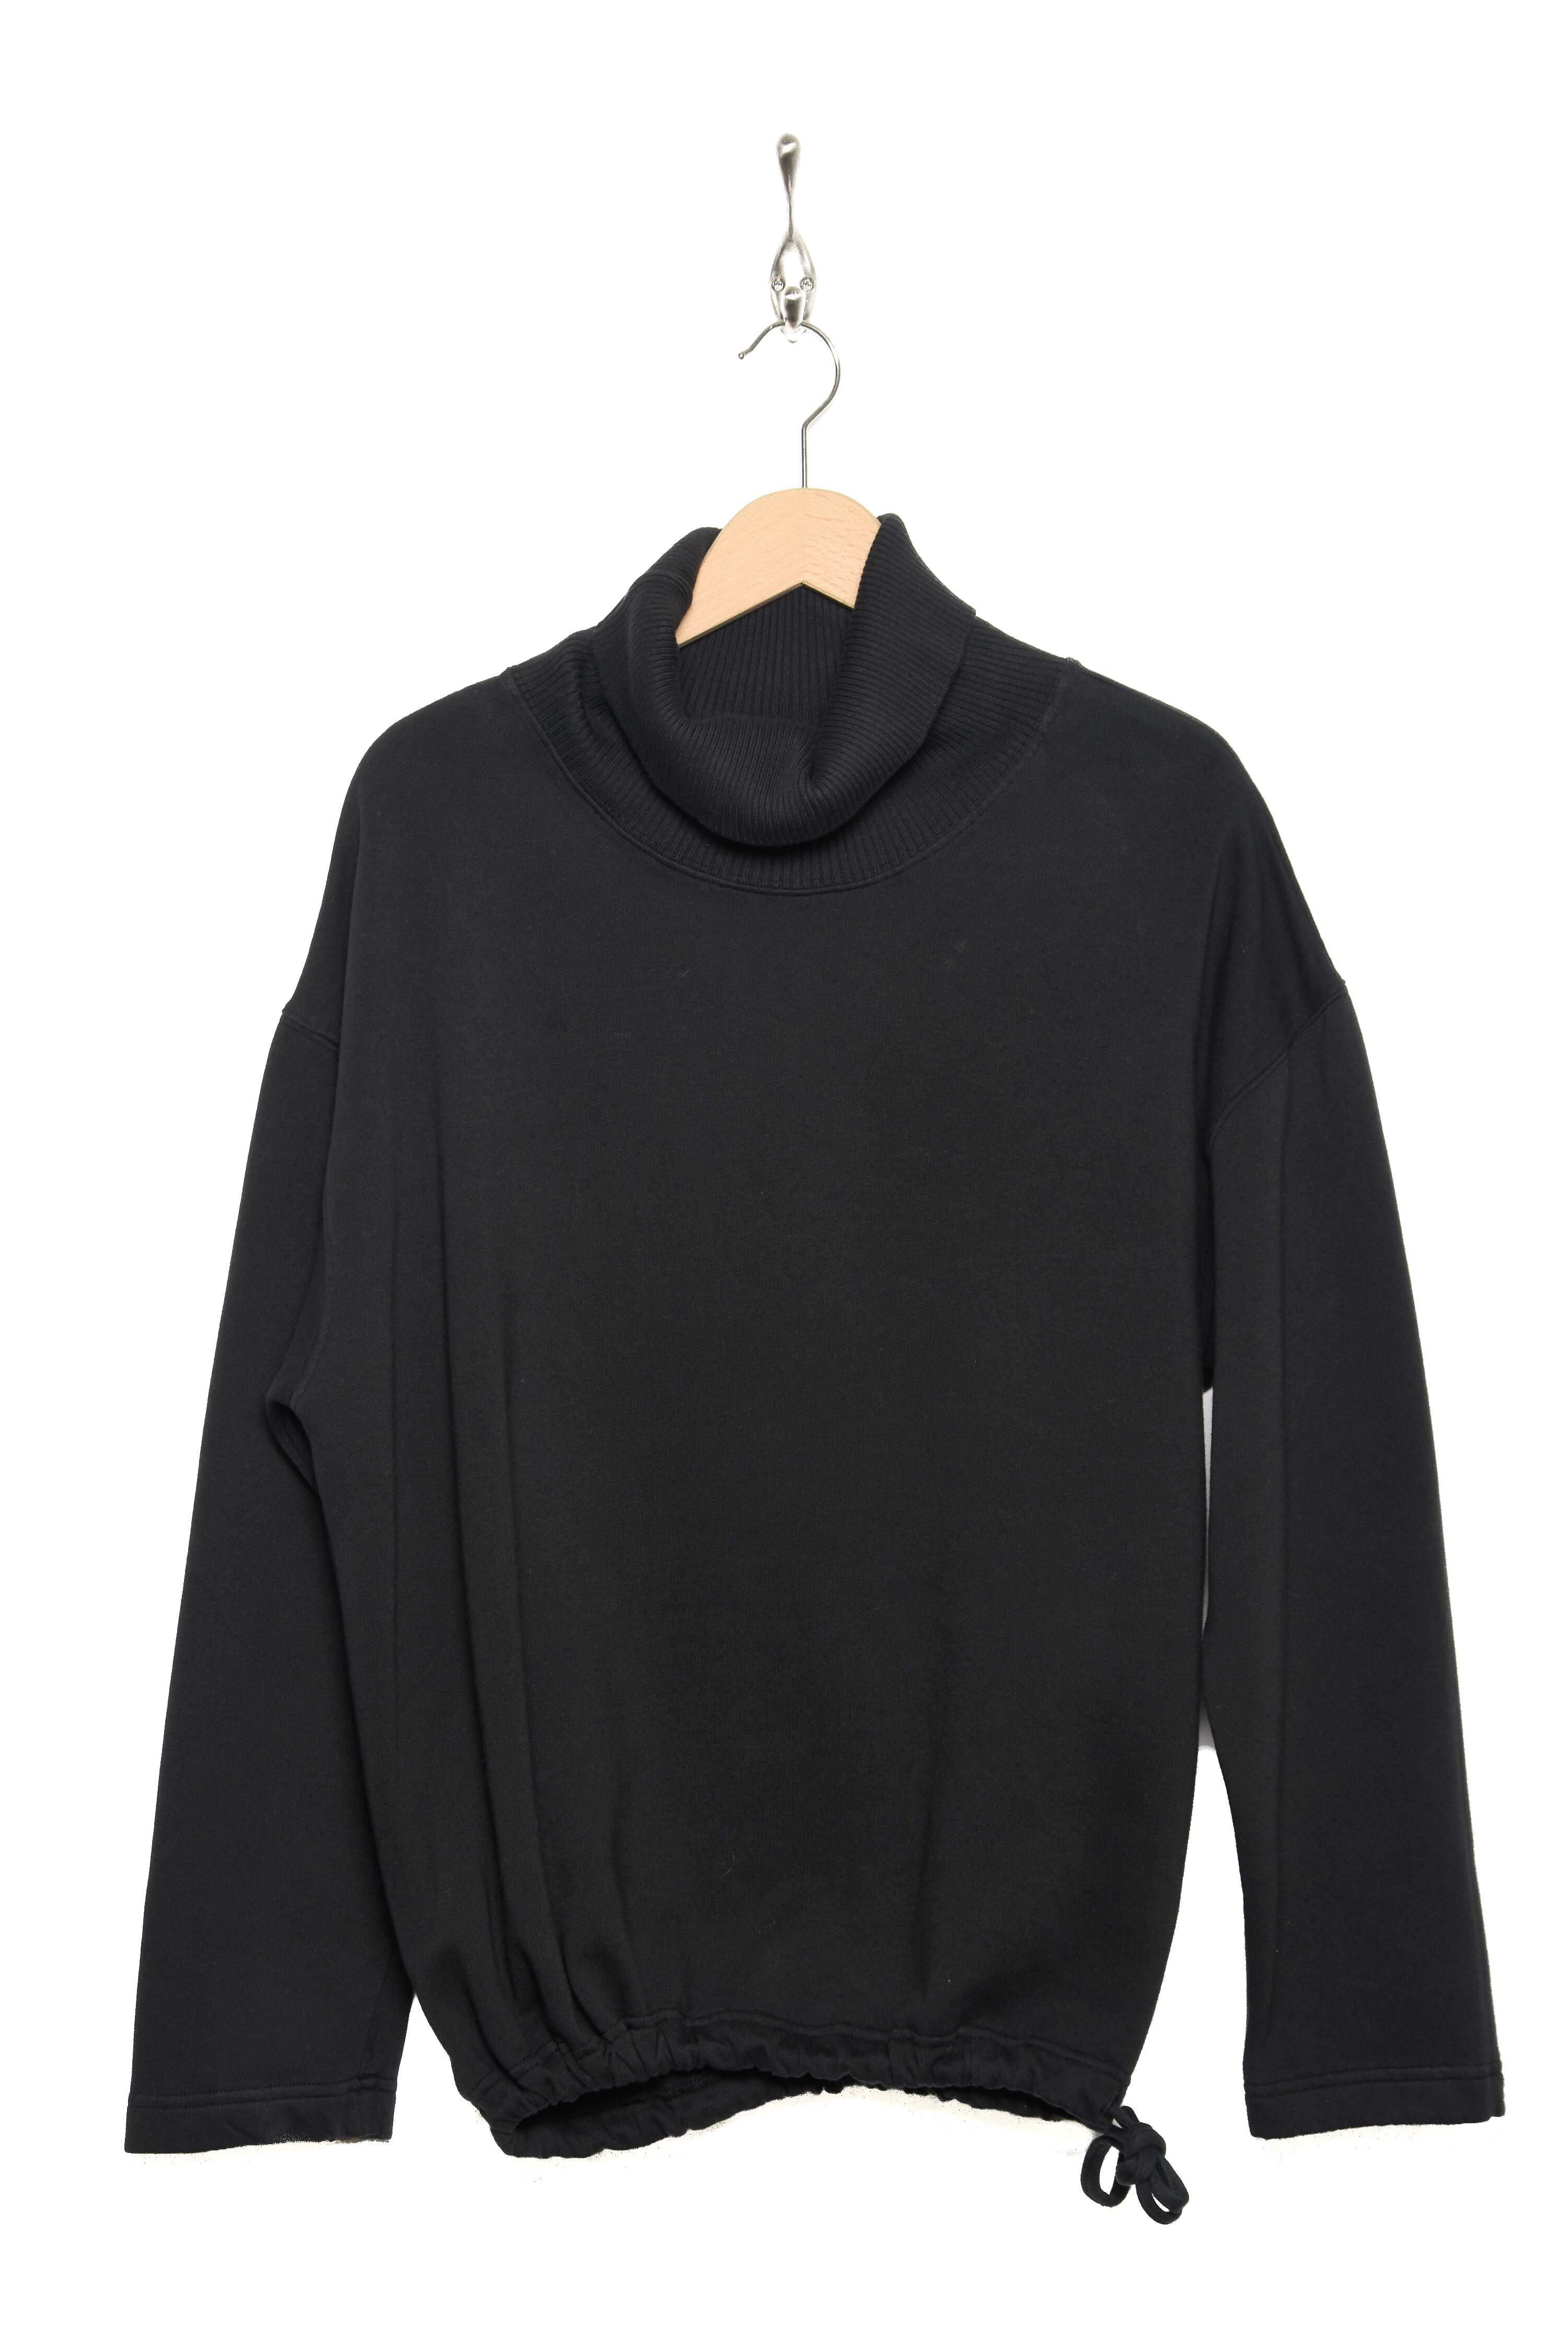 Turtle Neck Sweater black AW20-FLEE-COL-B